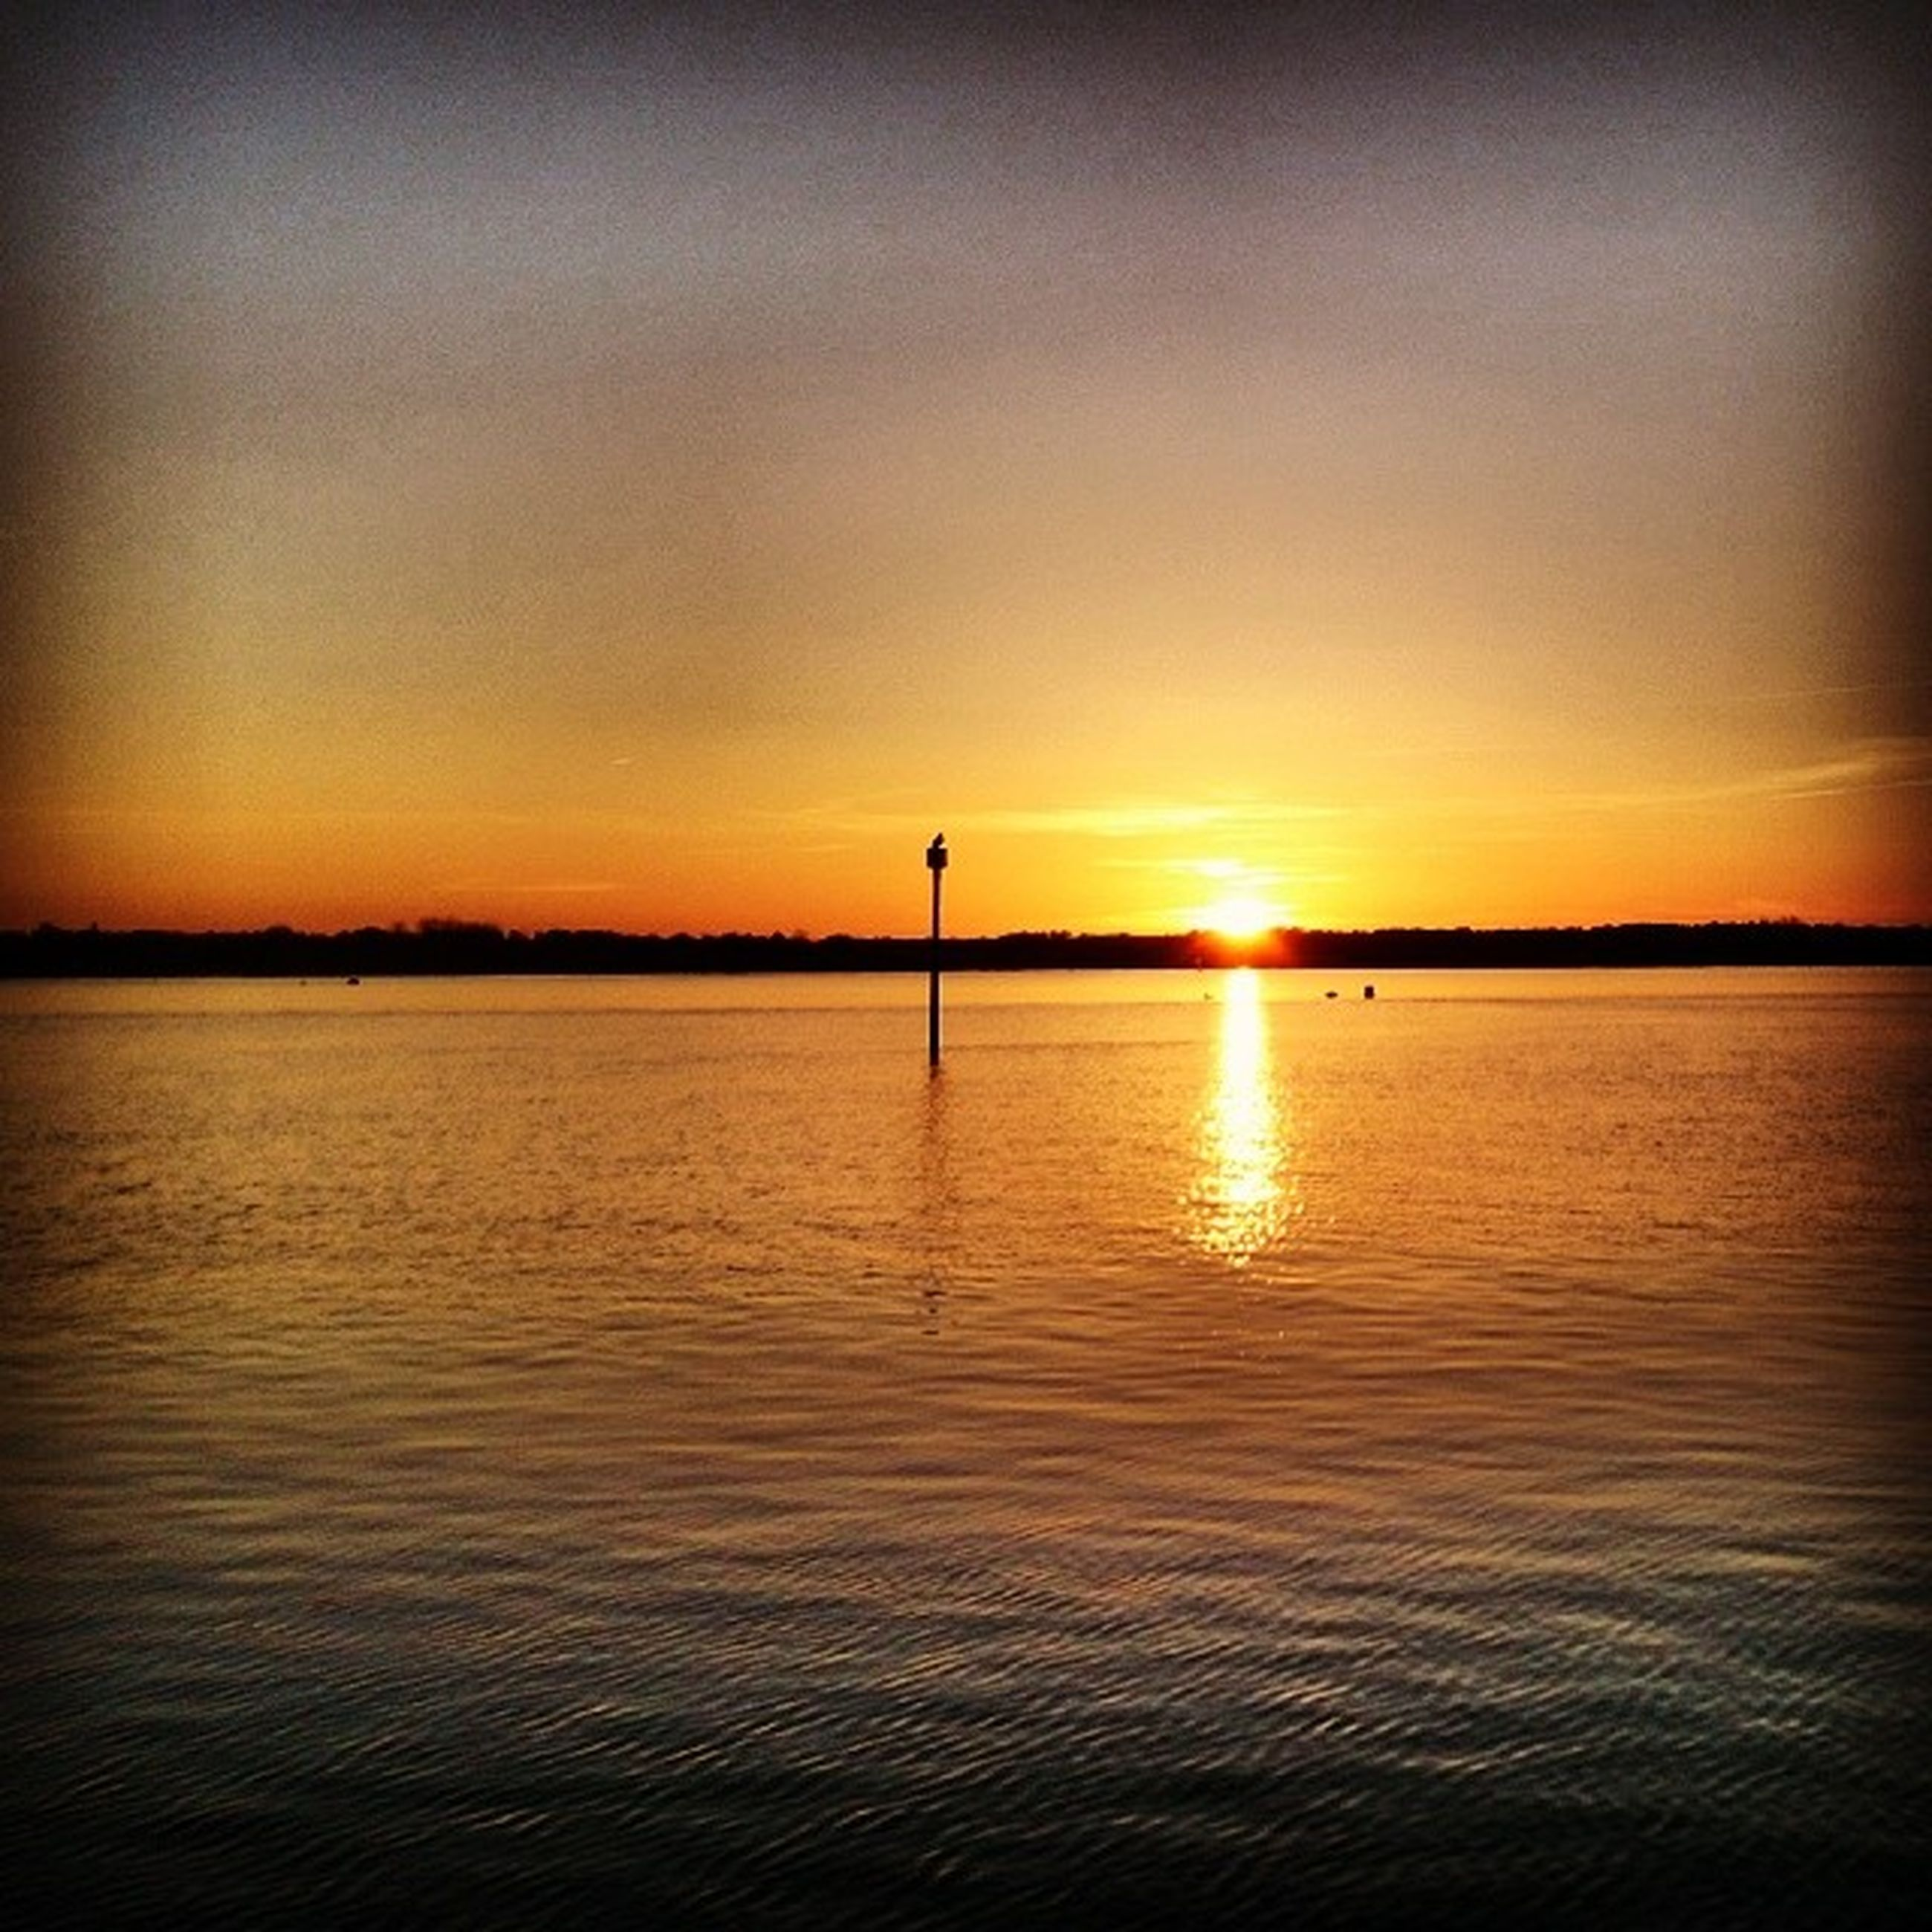 sunset, water, scenics, tranquil scene, tranquility, sun, beauty in nature, orange color, sea, idyllic, reflection, waterfront, rippled, nature, sky, majestic, calm, ocean, distant, dramatic sky, vacations, outdoors, seascape, atmosphere, non-urban scene, vibrant color, romantic sky, remote, atmospheric mood, moody sky